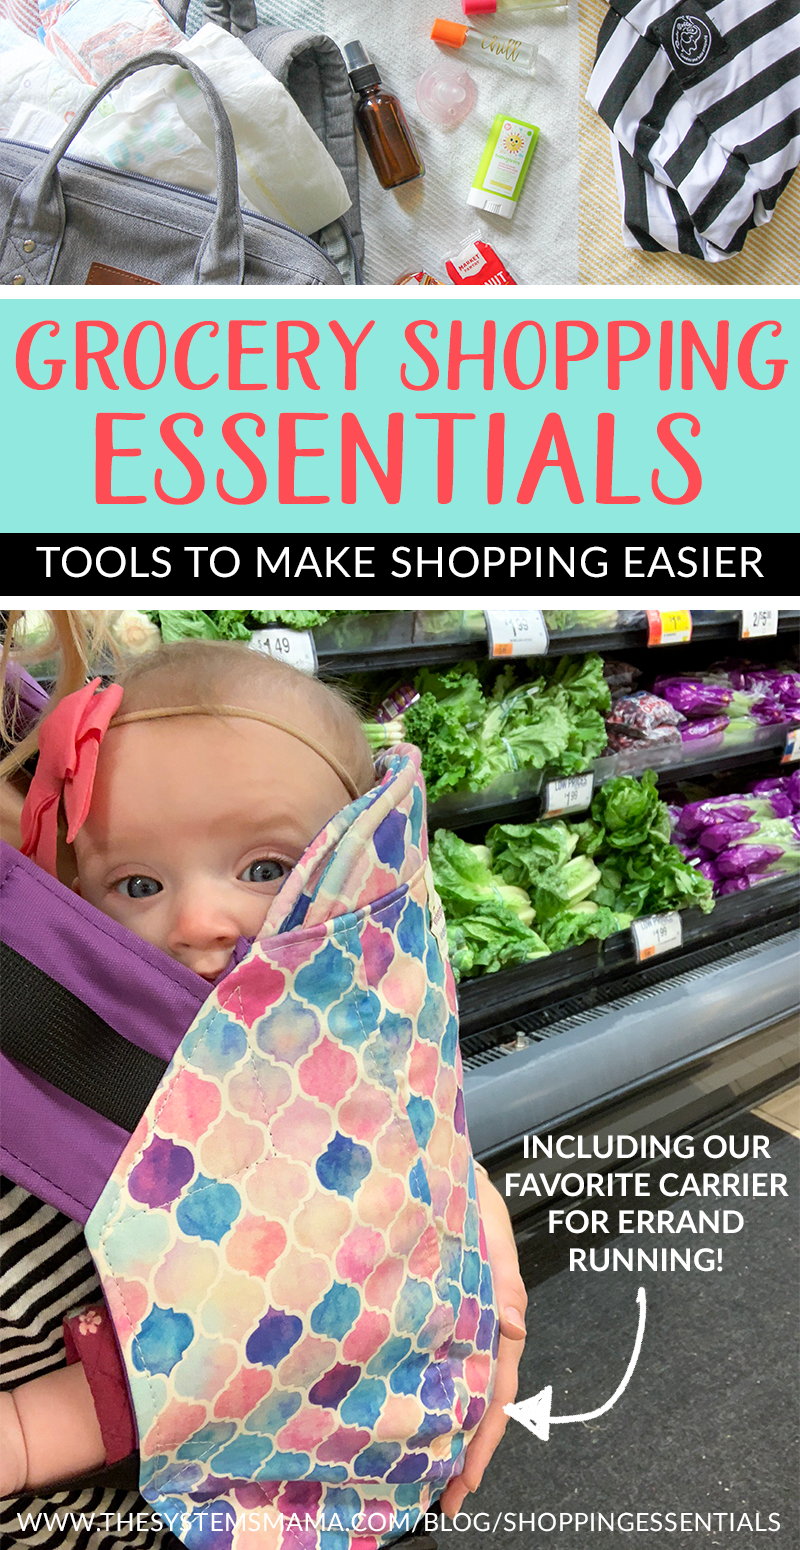 our favorite tools for making grocery shopping a little bit easier  www.thesystemsmama.com/blog/shoppingessentials  #groceryshopping #babywearing #kinderpack #groceries